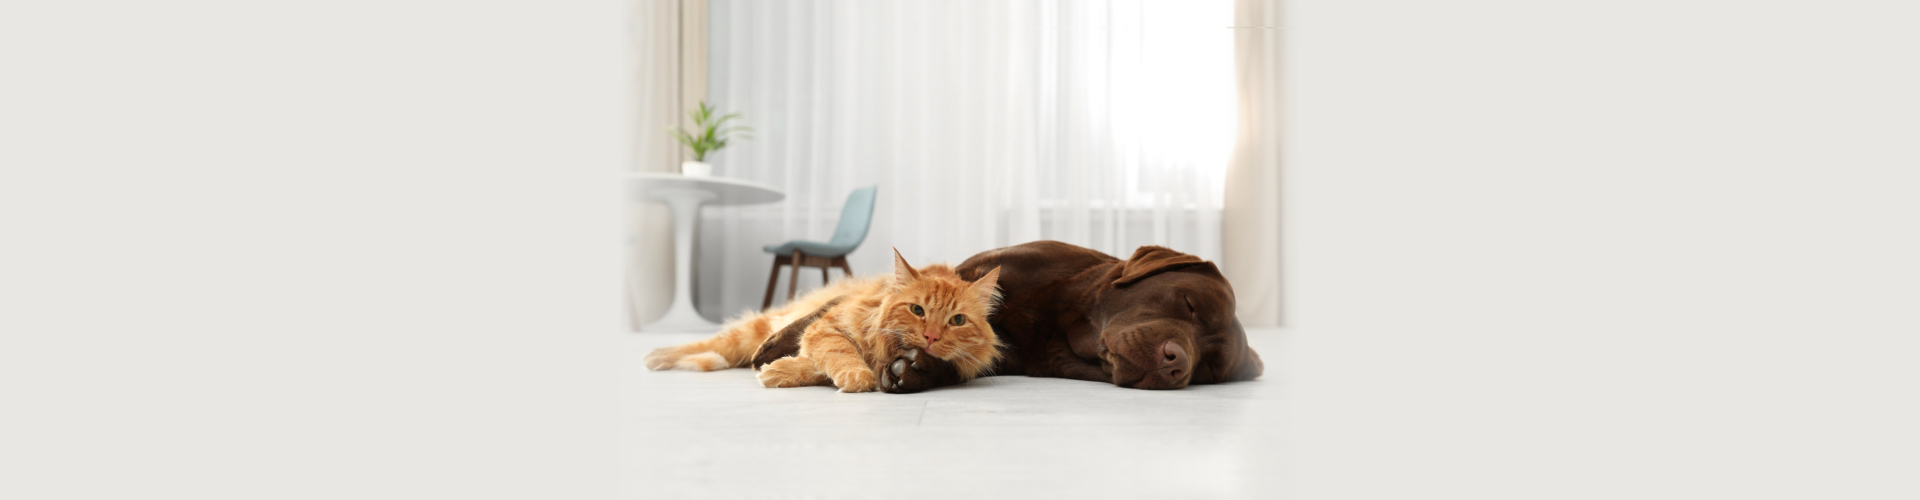 Cat and dog looking at camera on floor